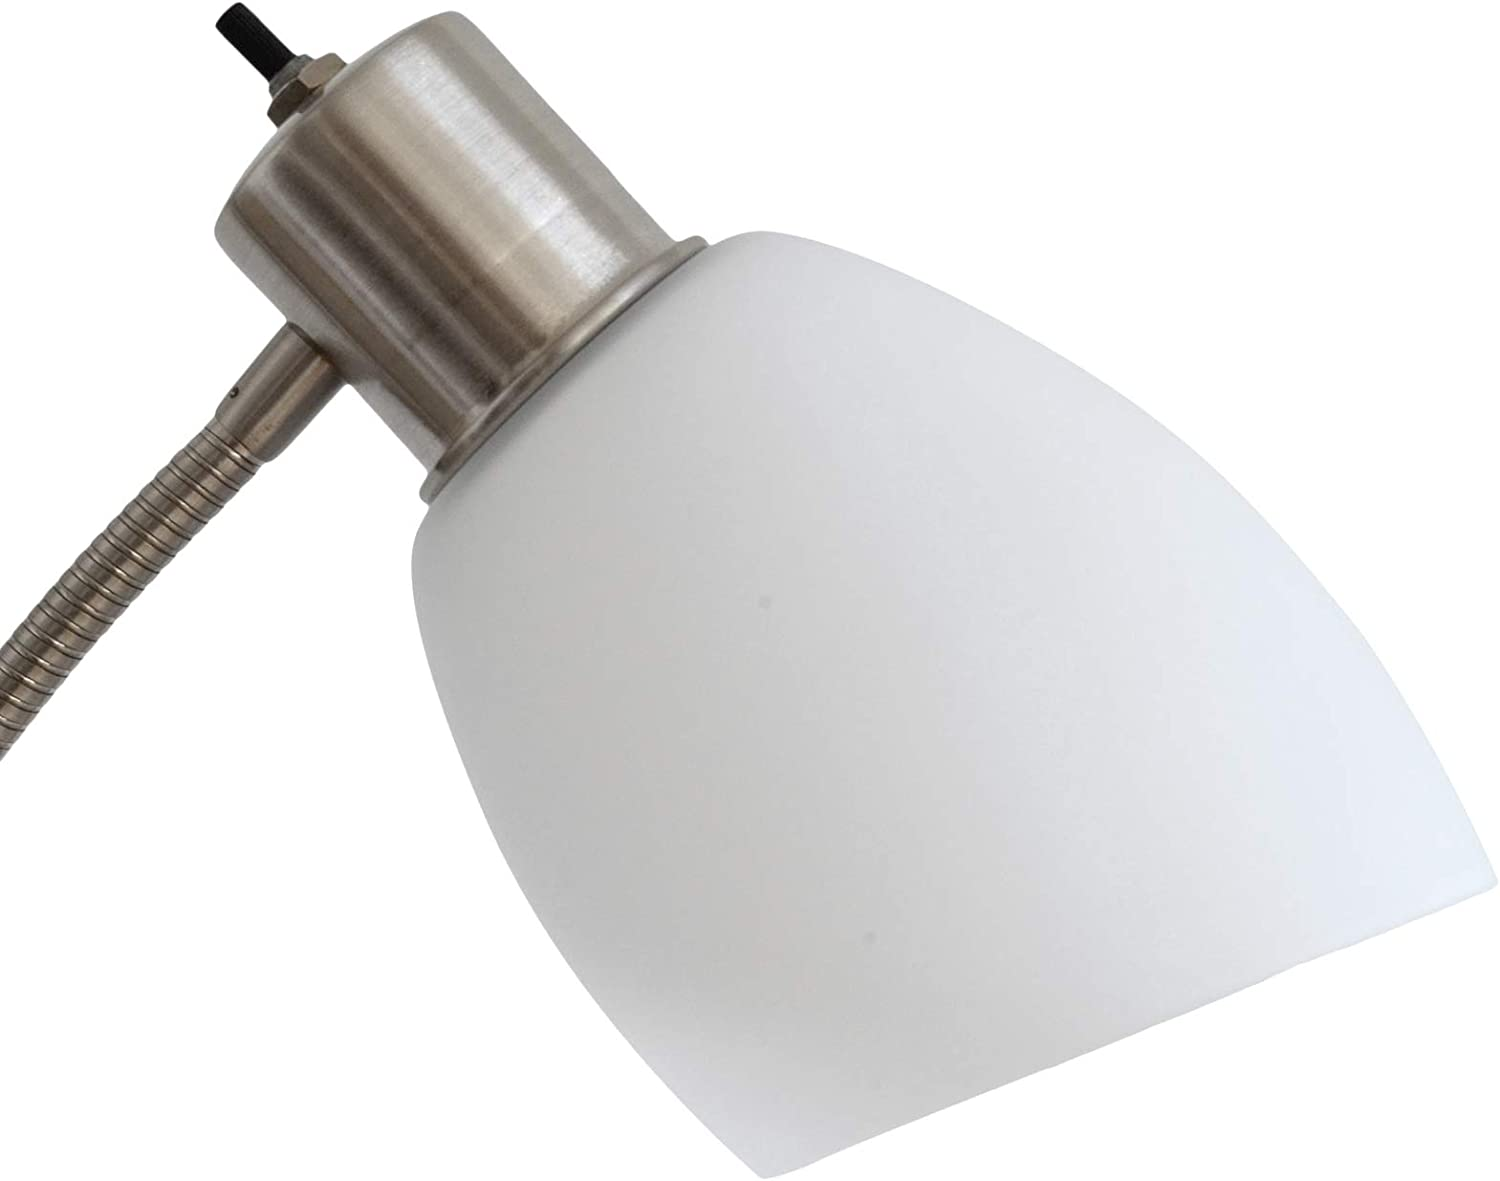 Room Basics Modern Frosted Glass Shade Replacement for Floor Lamps Wall Lamps Table Lamps Vanity Lights Replace Your Plastic Covers//Shades. Chandeliers